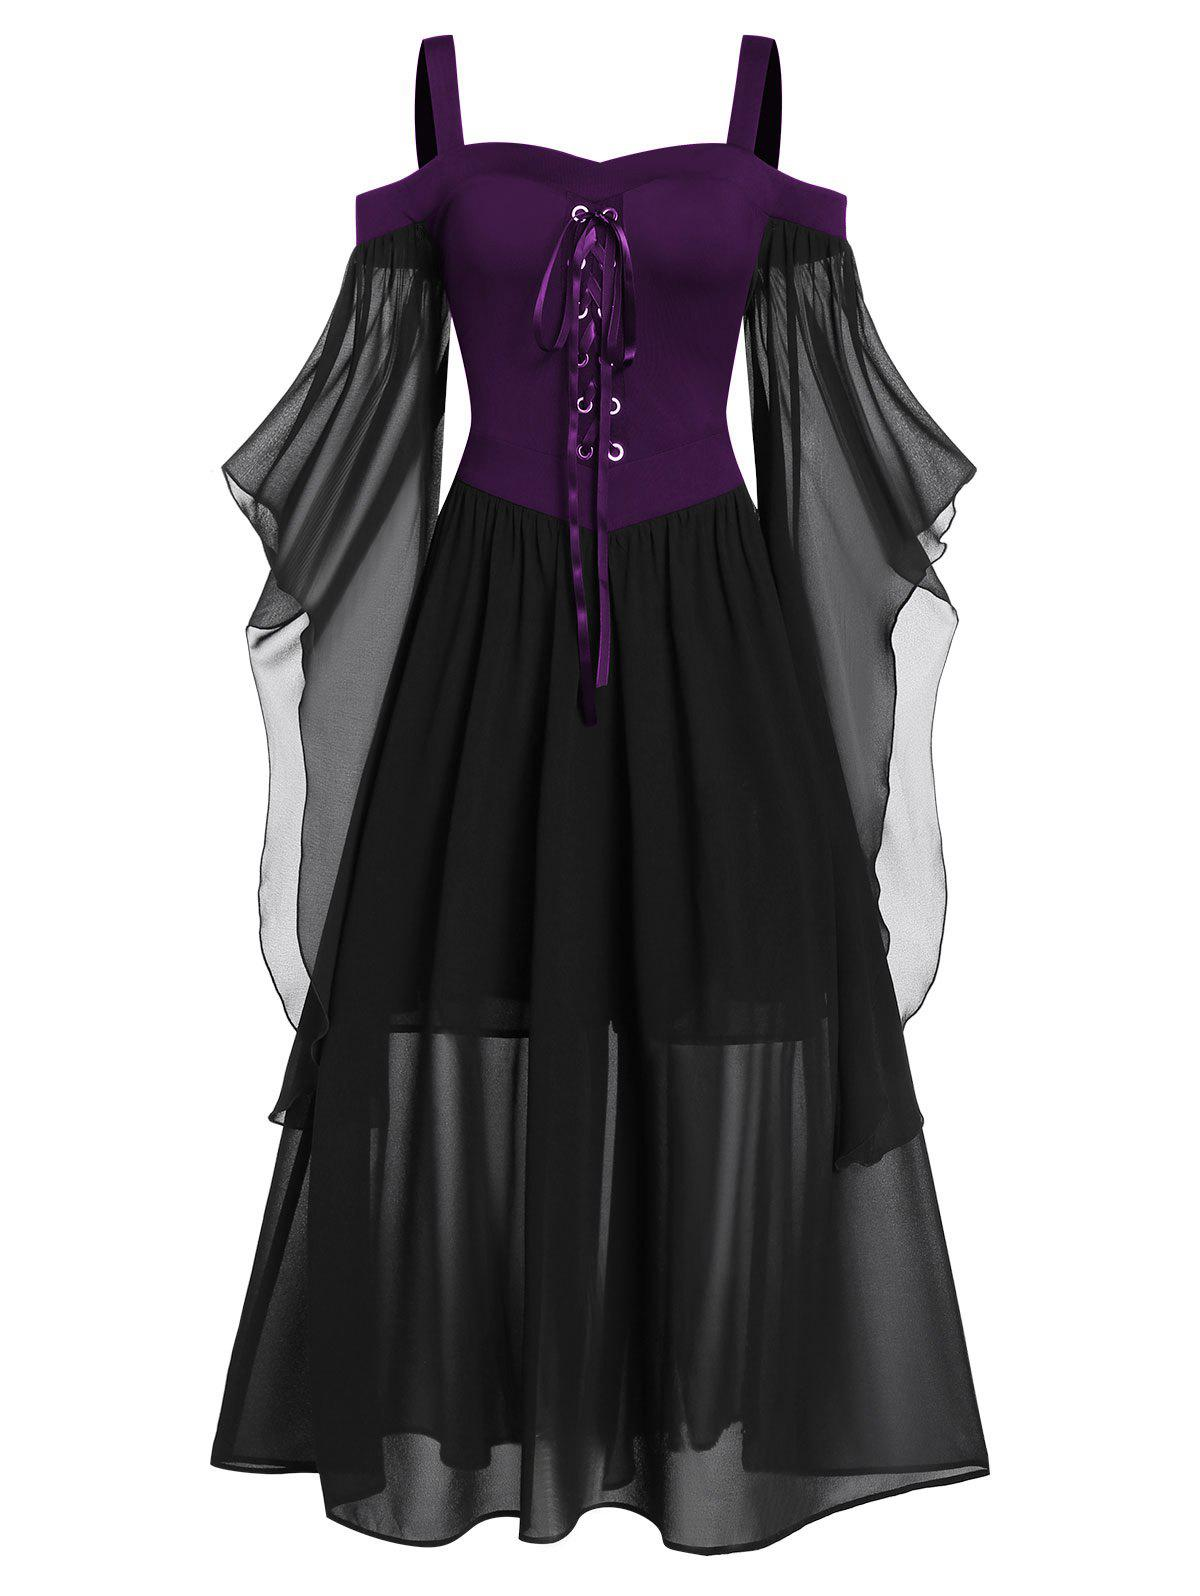 Trendy Plus Size Butterfly Sleeve Lace Up Gothic Halloween Dress